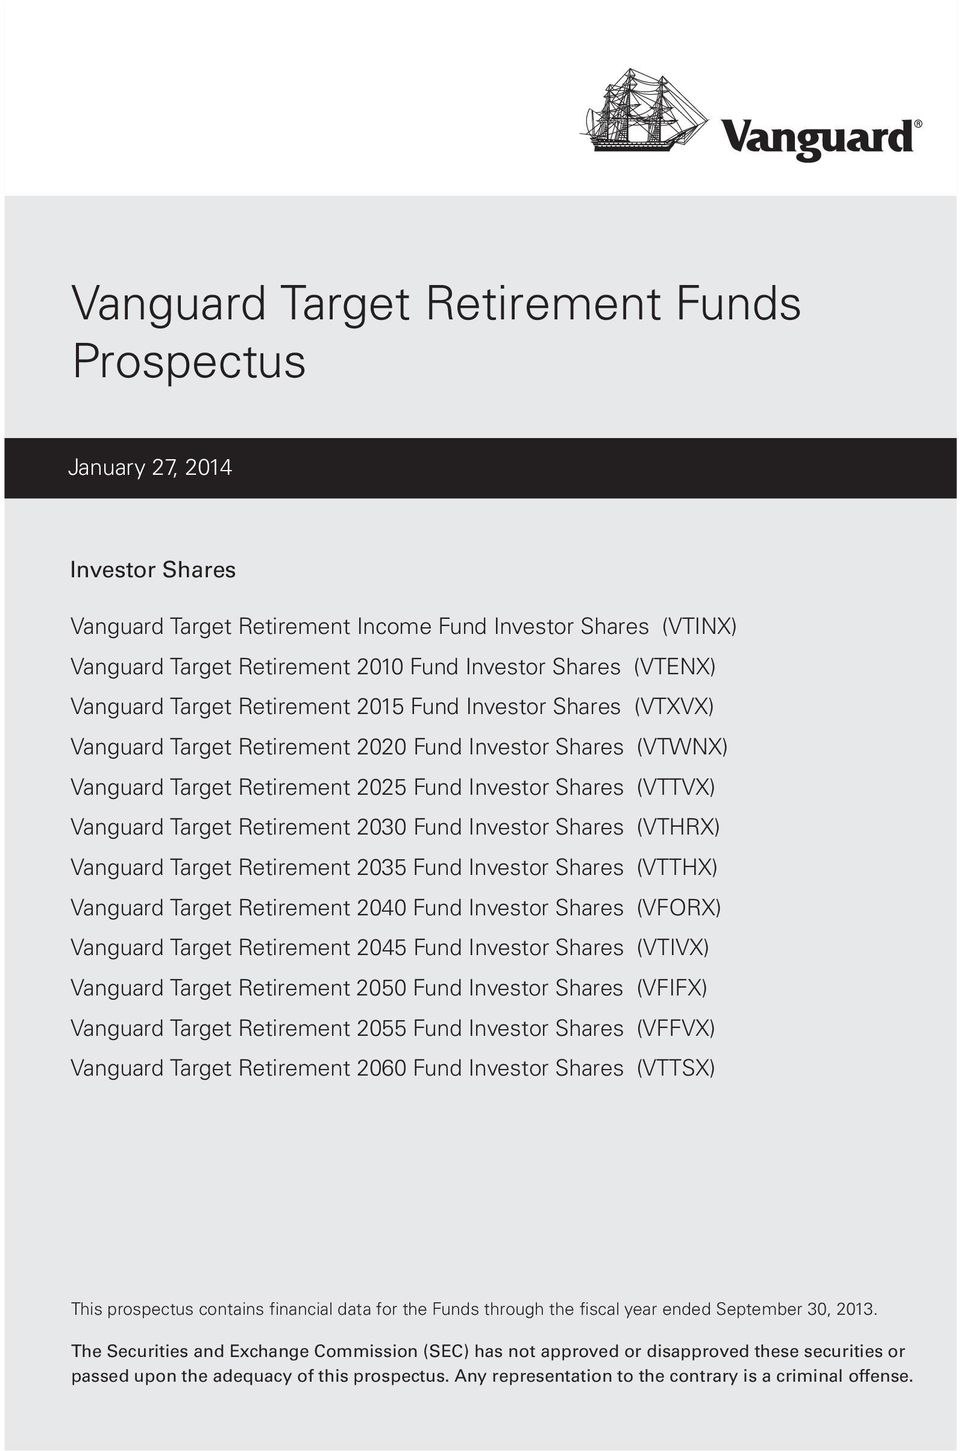 Target Retirement 2030 Fund Investor Shares (VTHRX) Vanguard Target Retirement 2035 Fund Investor Shares (VTTHX) Vanguard Target Retirement 2040 Fund Investor Shares (VFORX) Vanguard Target